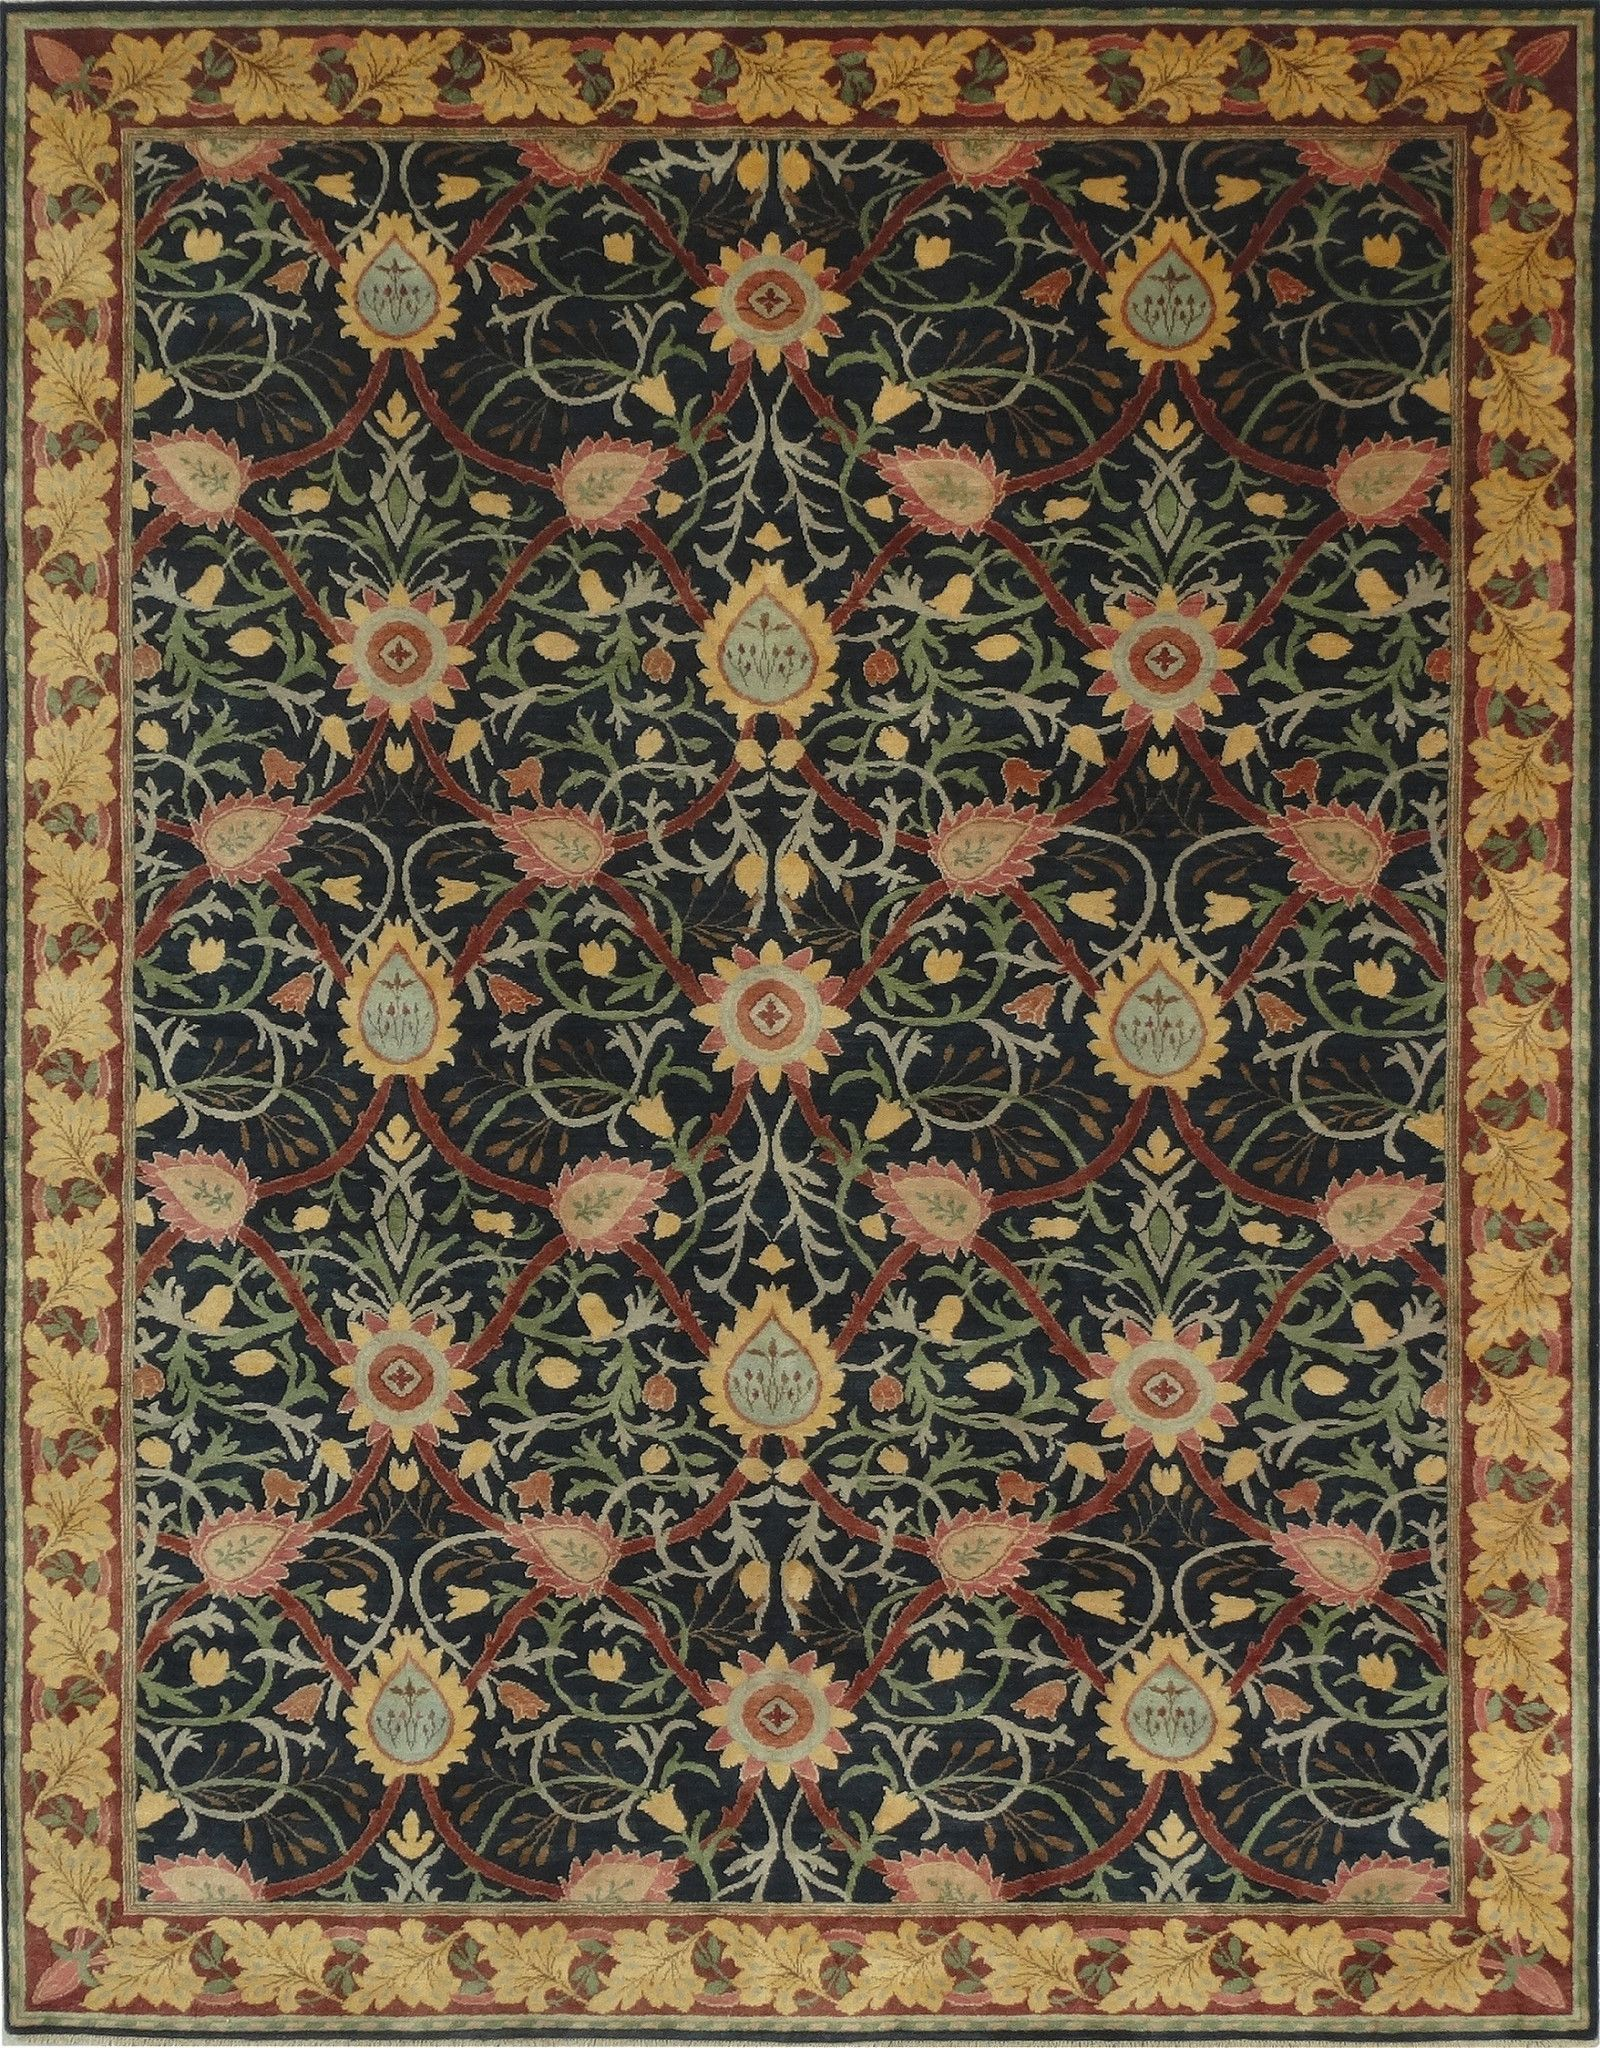 Arts and crafts movement design - The Merton Design By William Morris Is An Arts And Crafts Movement Design In Authentic Period Colors Perfect In Victorian Interiors And For Those Who